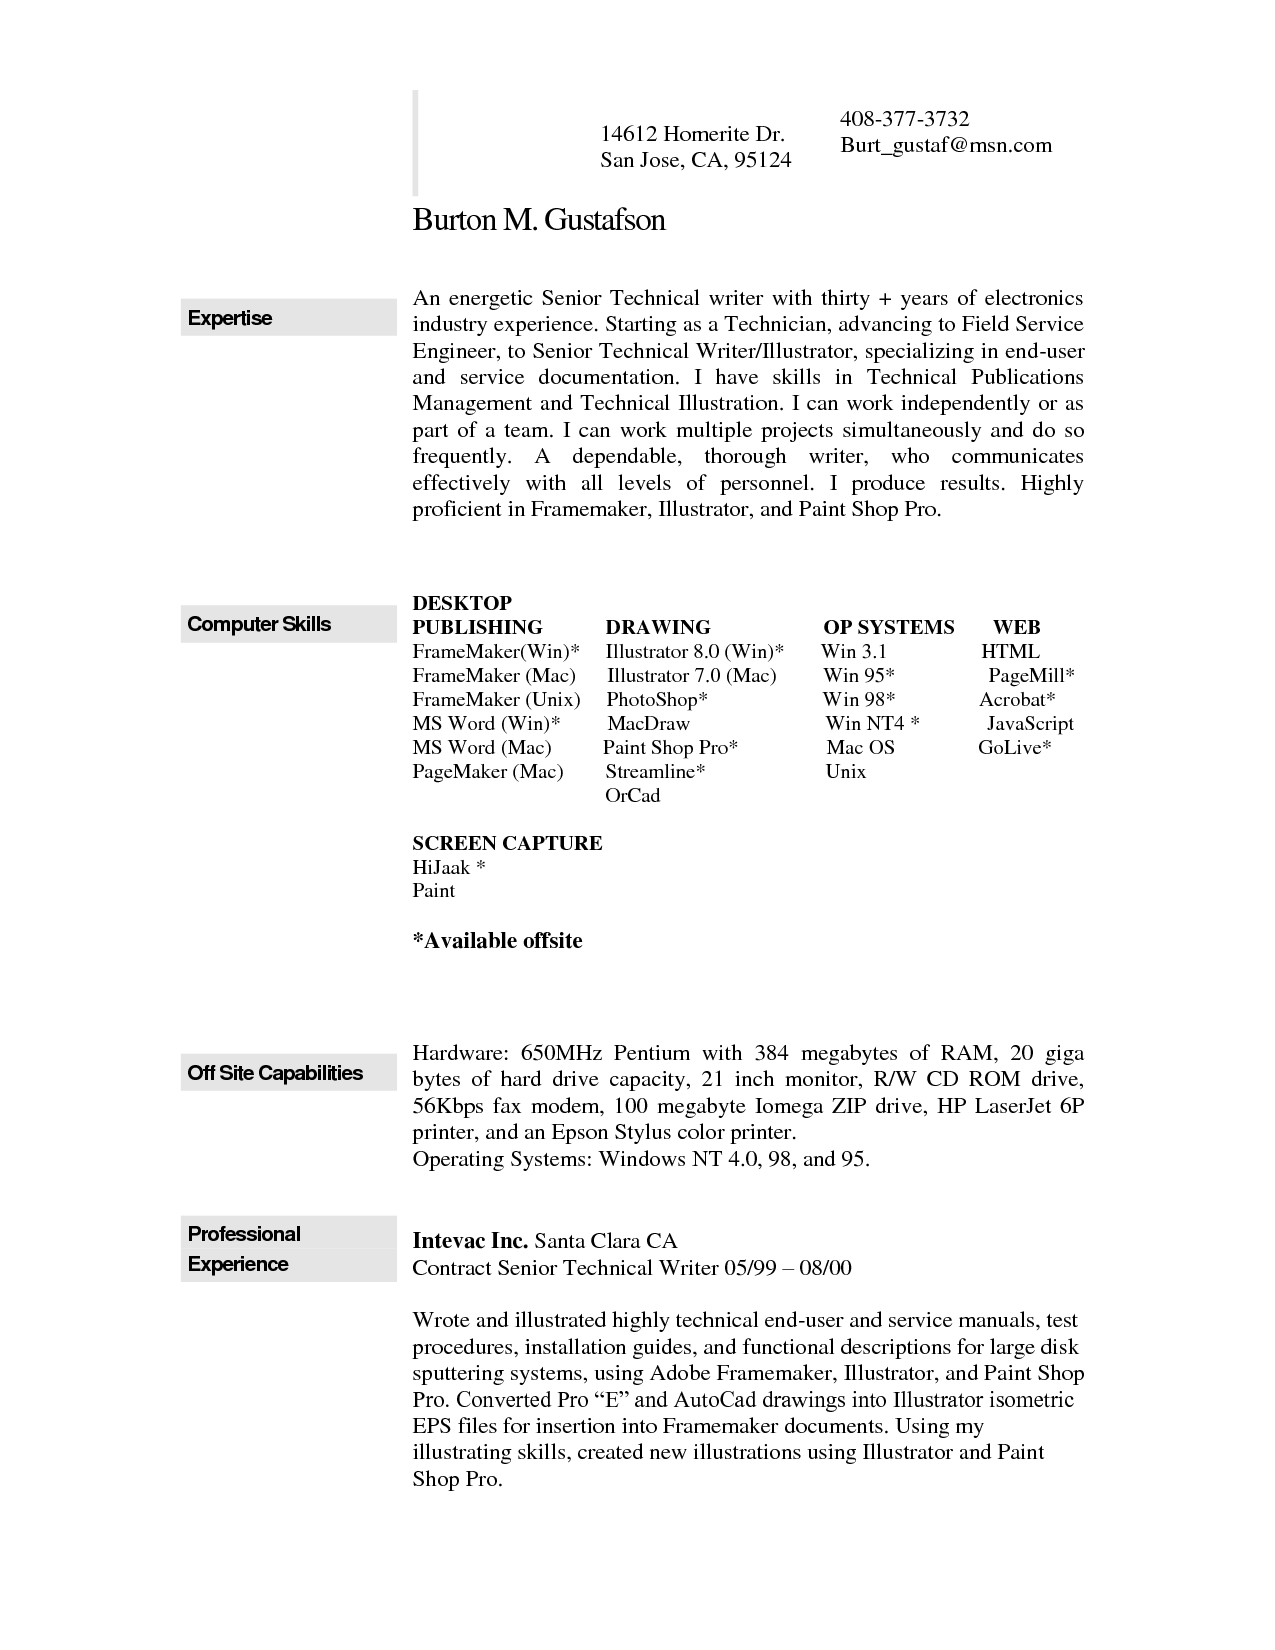 Sample Resume Builder Templates And Best Free Mac Professional Resumes Online Software Wit Downloadable Resume Template Cover Letter For Resume Resume Software